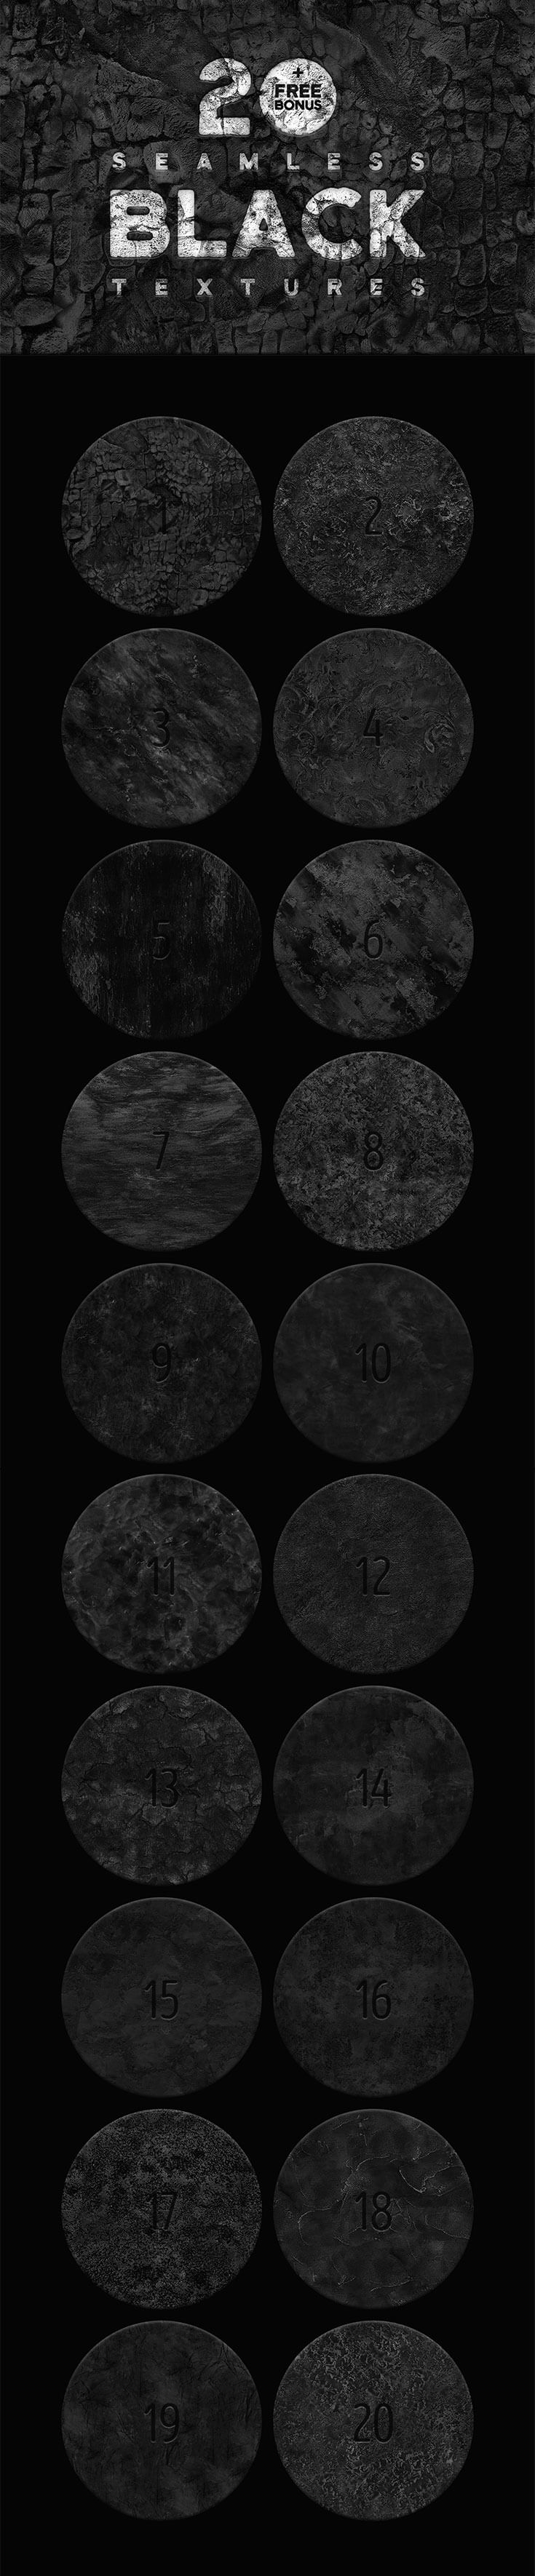 #48 #Free Seamless Black#Textures are coming from TimXez. This pack contains 20 seamless coal textures that can be useful for background images. It is perfect for any project like branding, greeting cards, halloween poster, websites, printable, crafts, fashion and so much more.